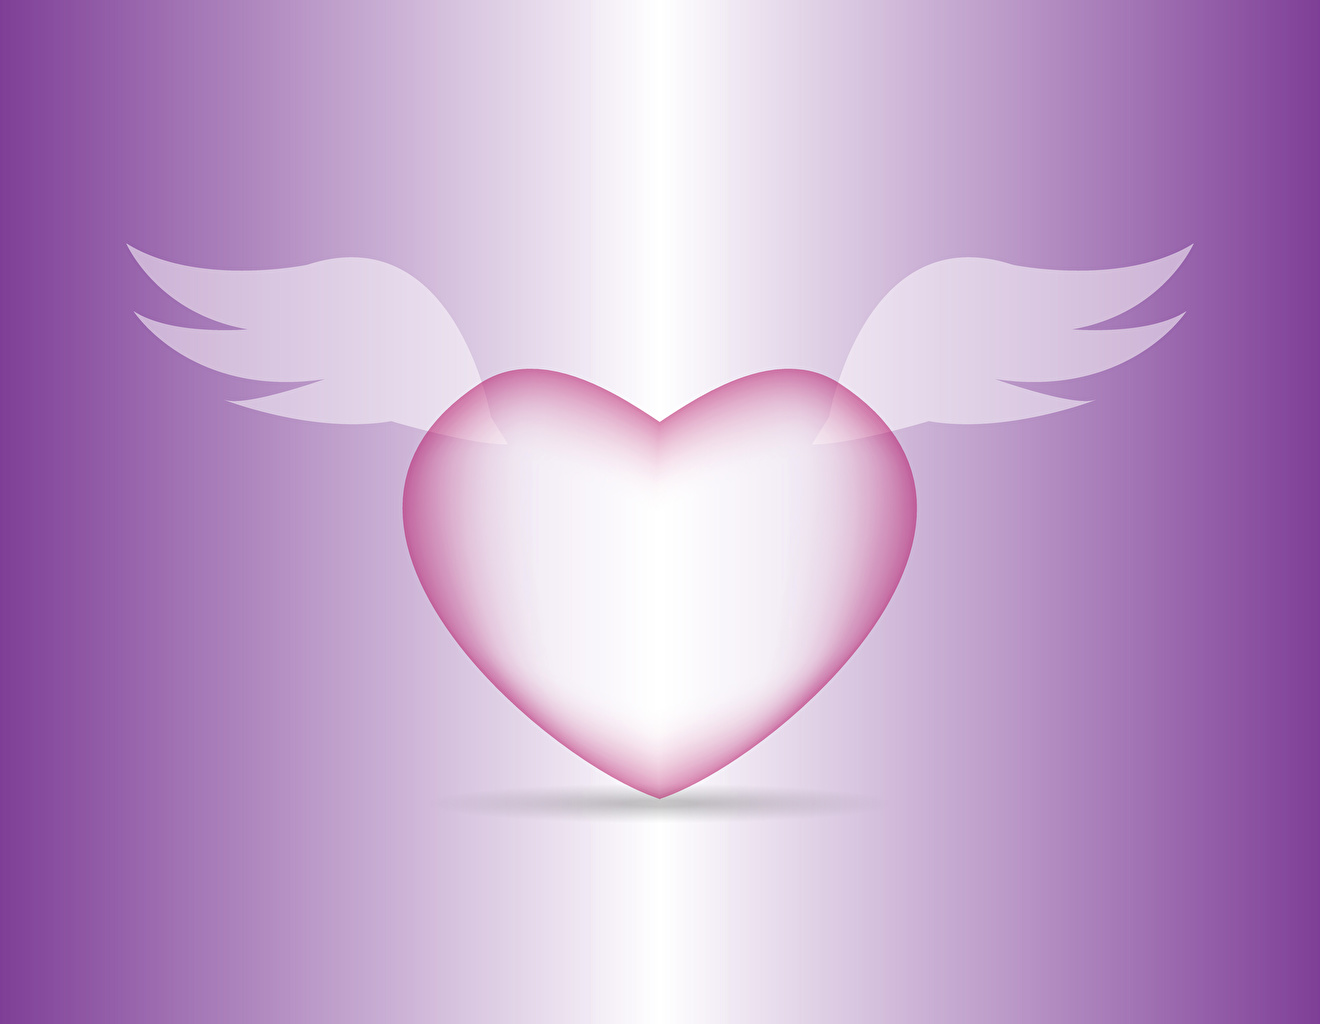 Image Valentine's Day Heart Wings Colored background